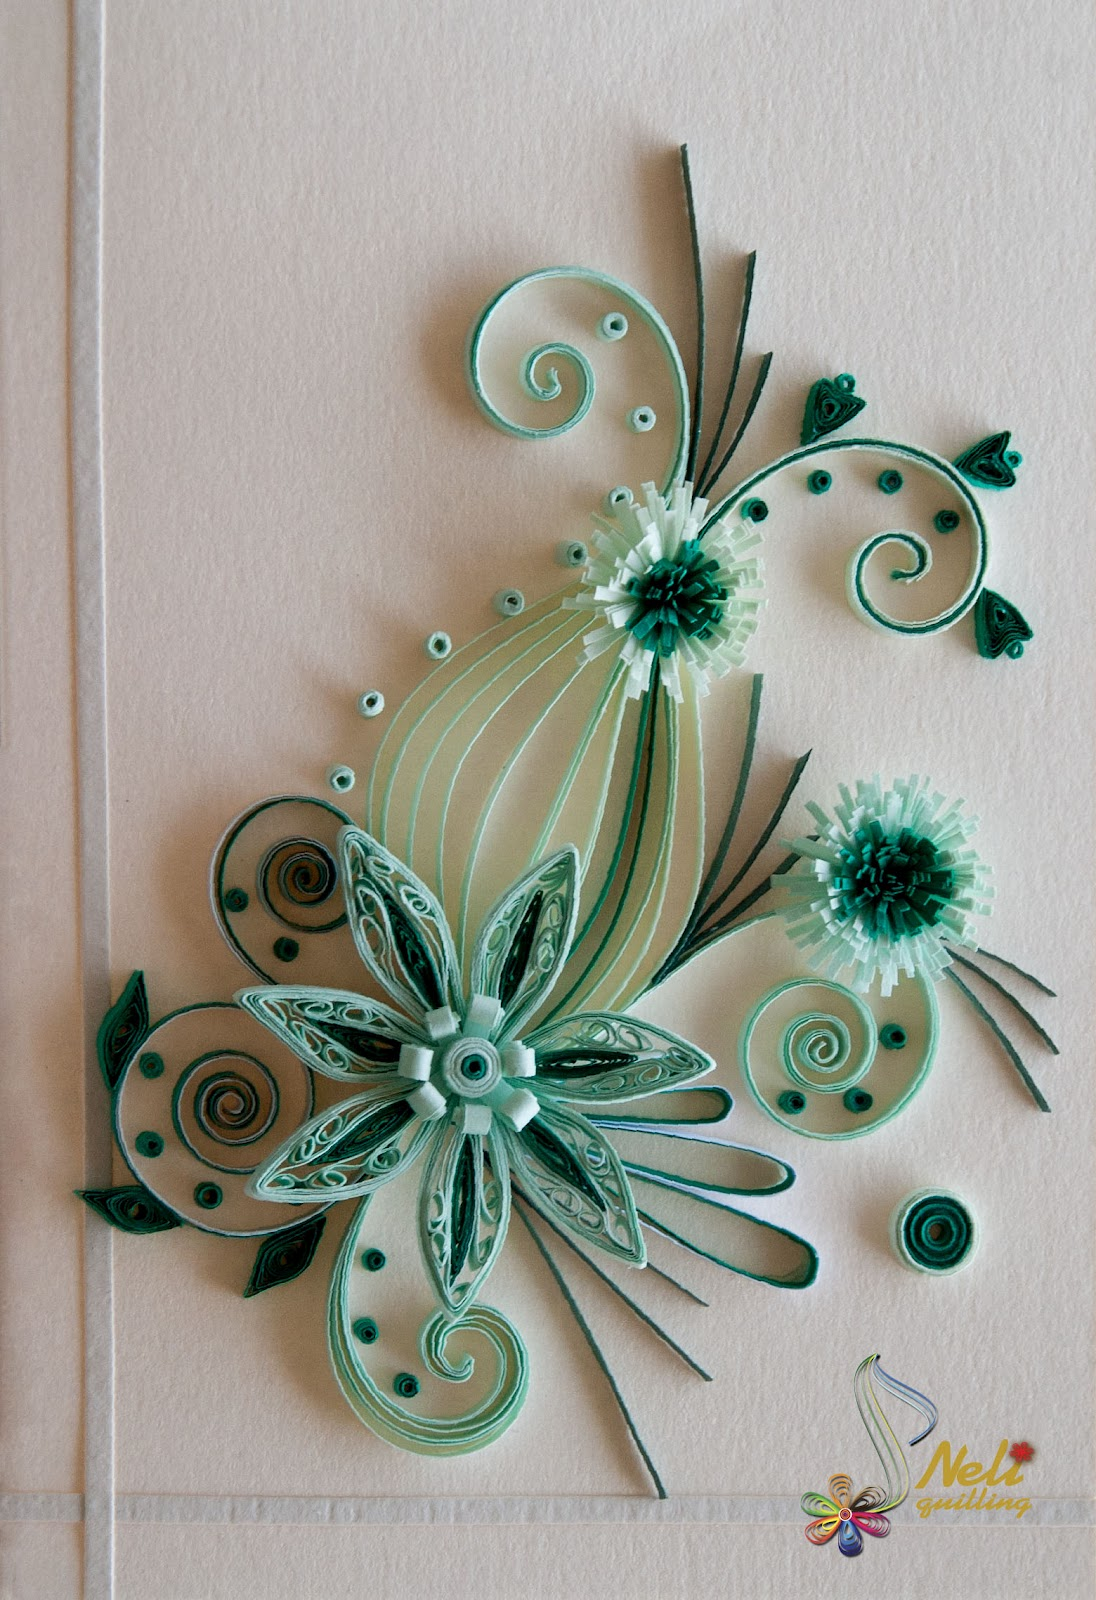 Quilling cards on pinterest neli quilling quilling for Quilling how to